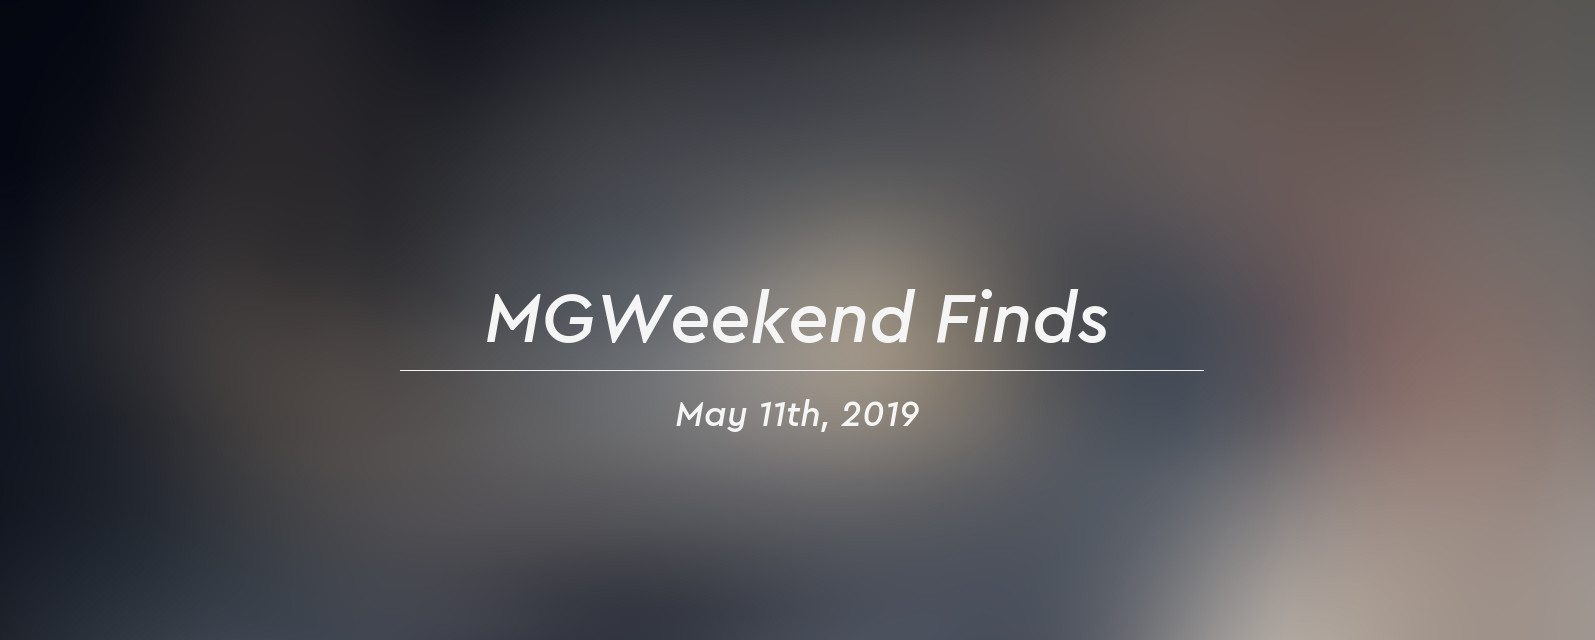 MGWeekend Finds May 11th, 2019 Header - MyGrailWatch